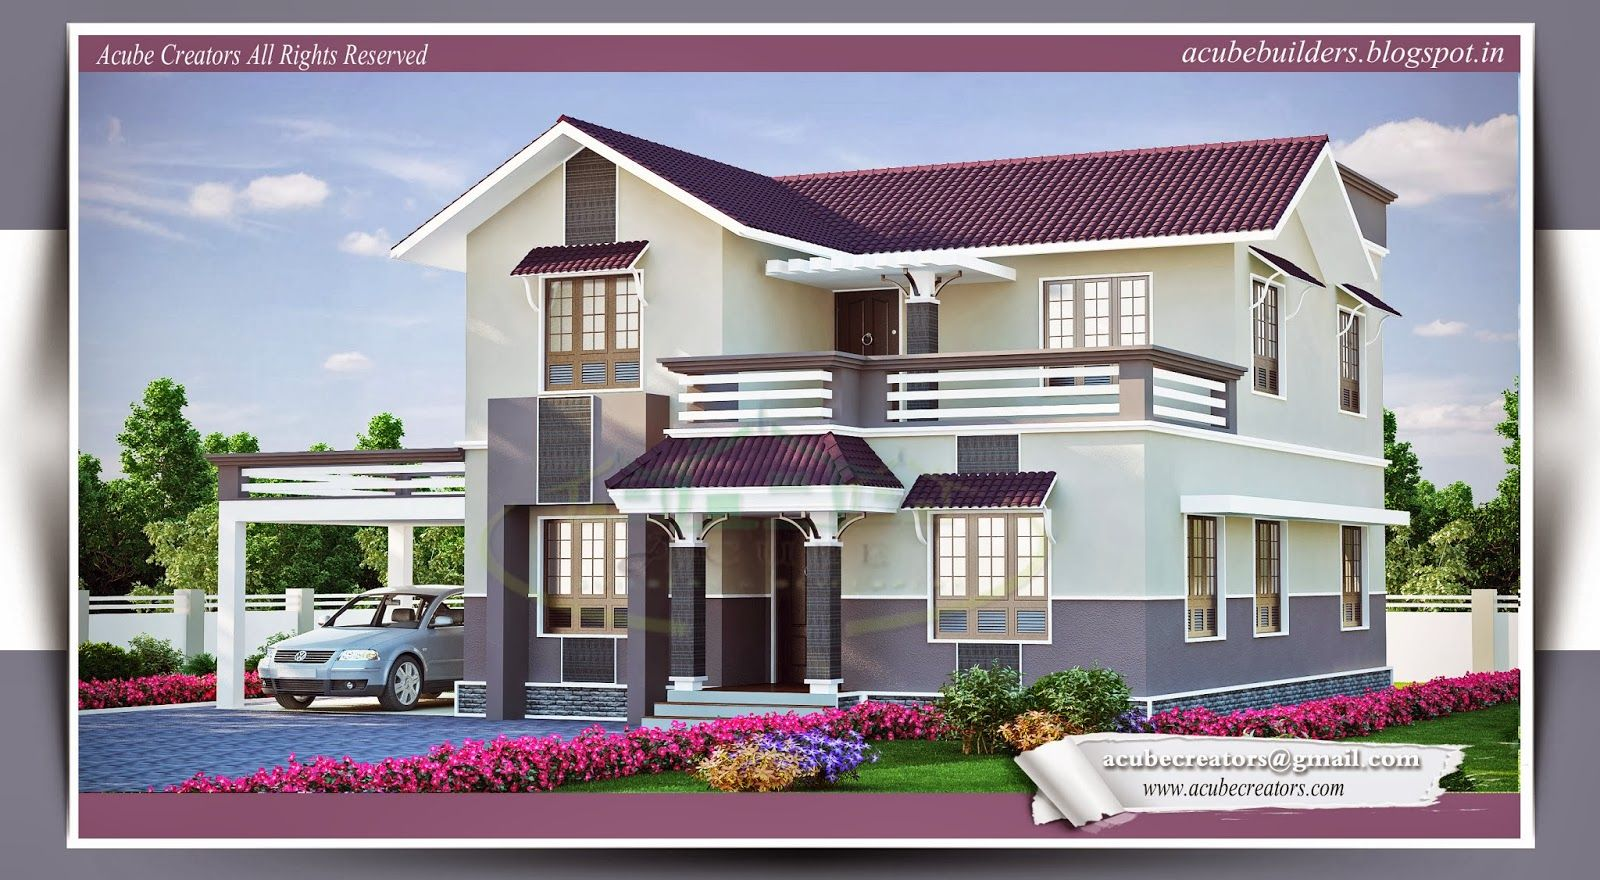 Kerala beautiful house plans photos home decoration pinterest beautiful house plans house - Beautiful design of a house ...